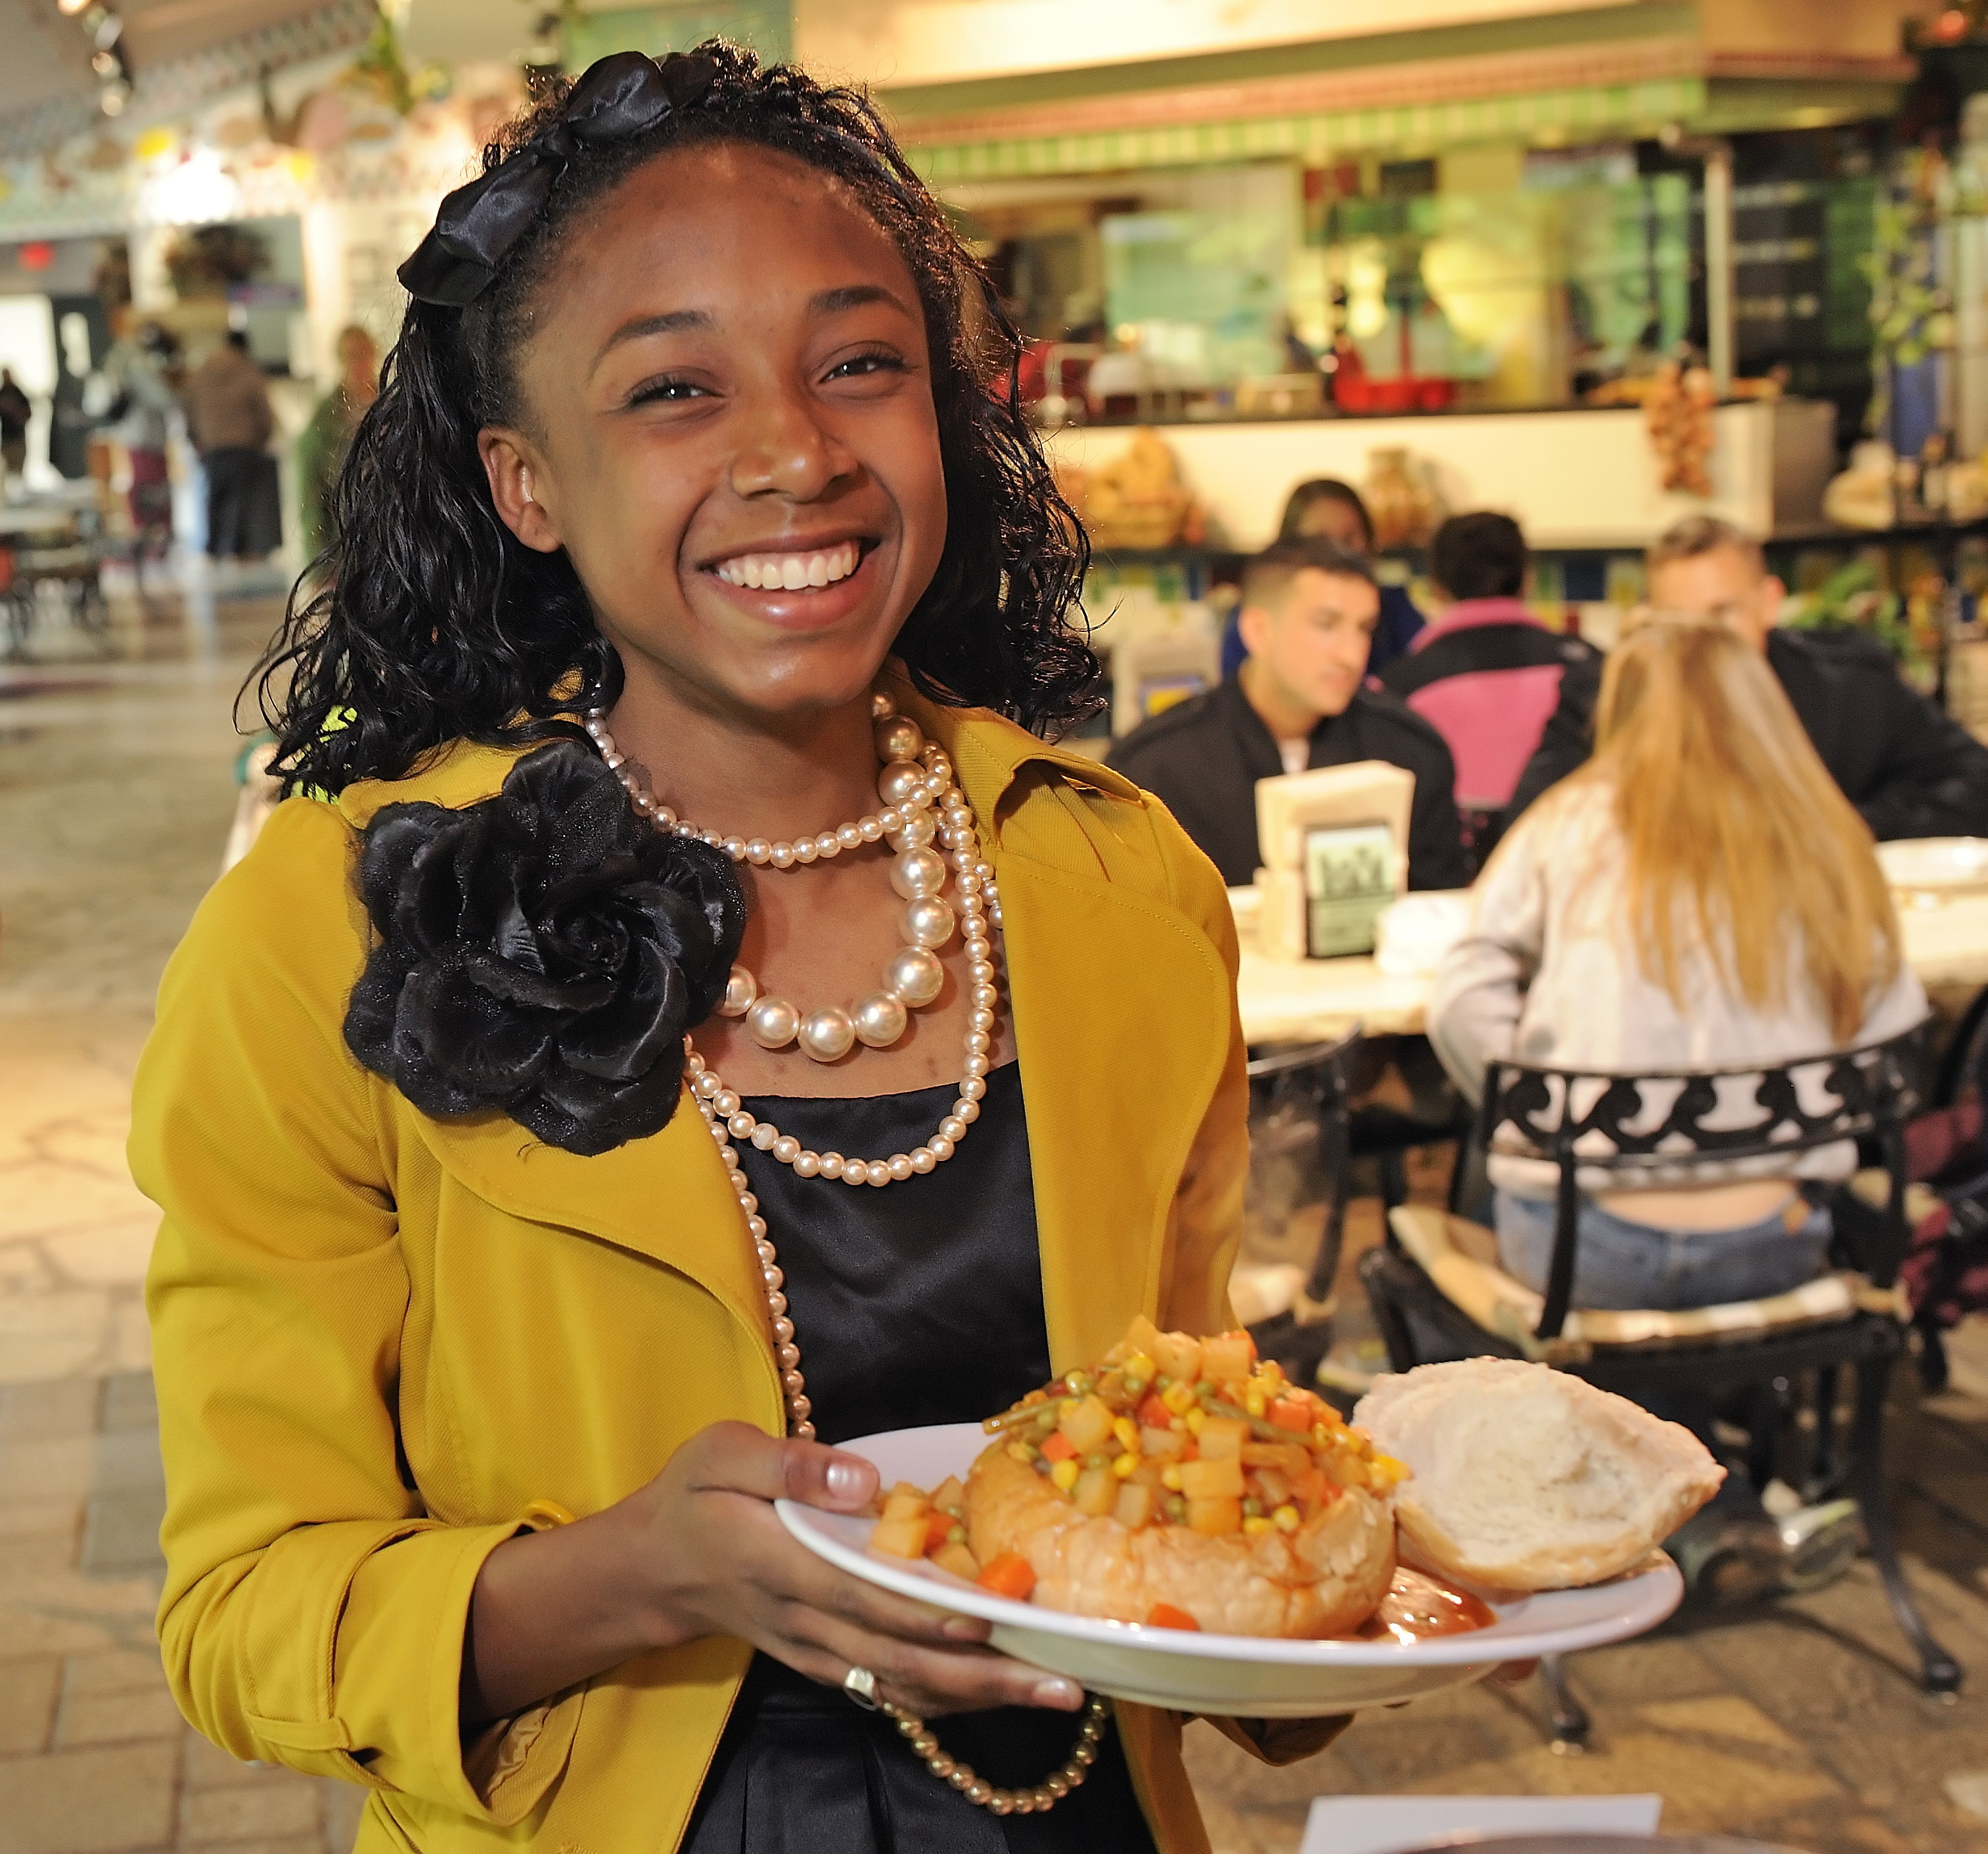 A student smiles as she displays a bowl of vegetable soup at West End Market.